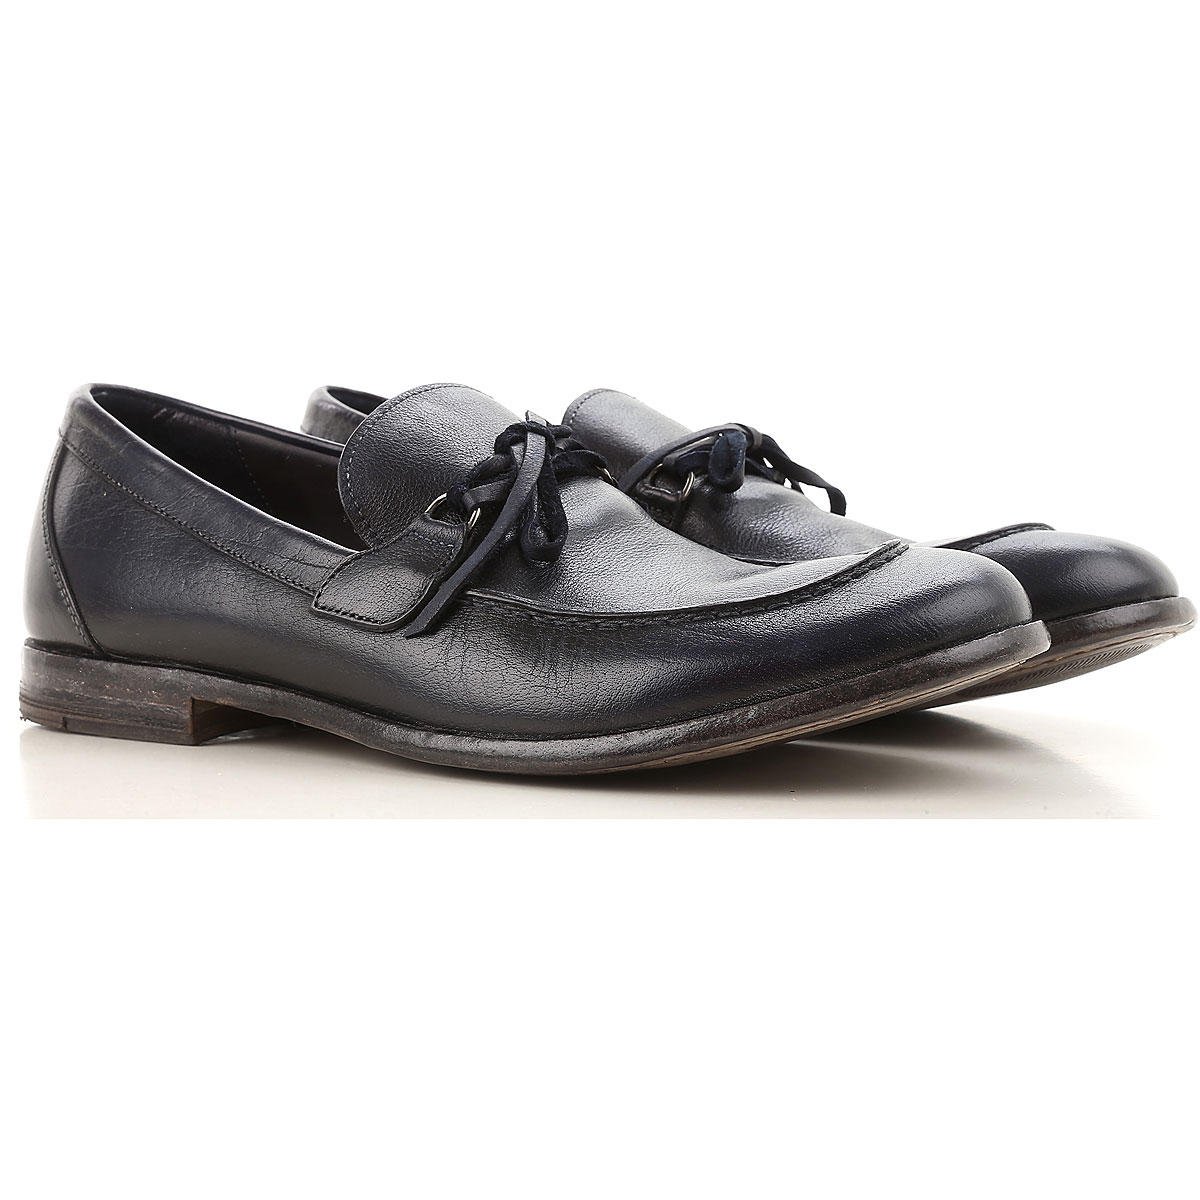 Image of Moma Loafers for Men On Sale, Dark Blue, Leather, 2017, 7.5 8 9